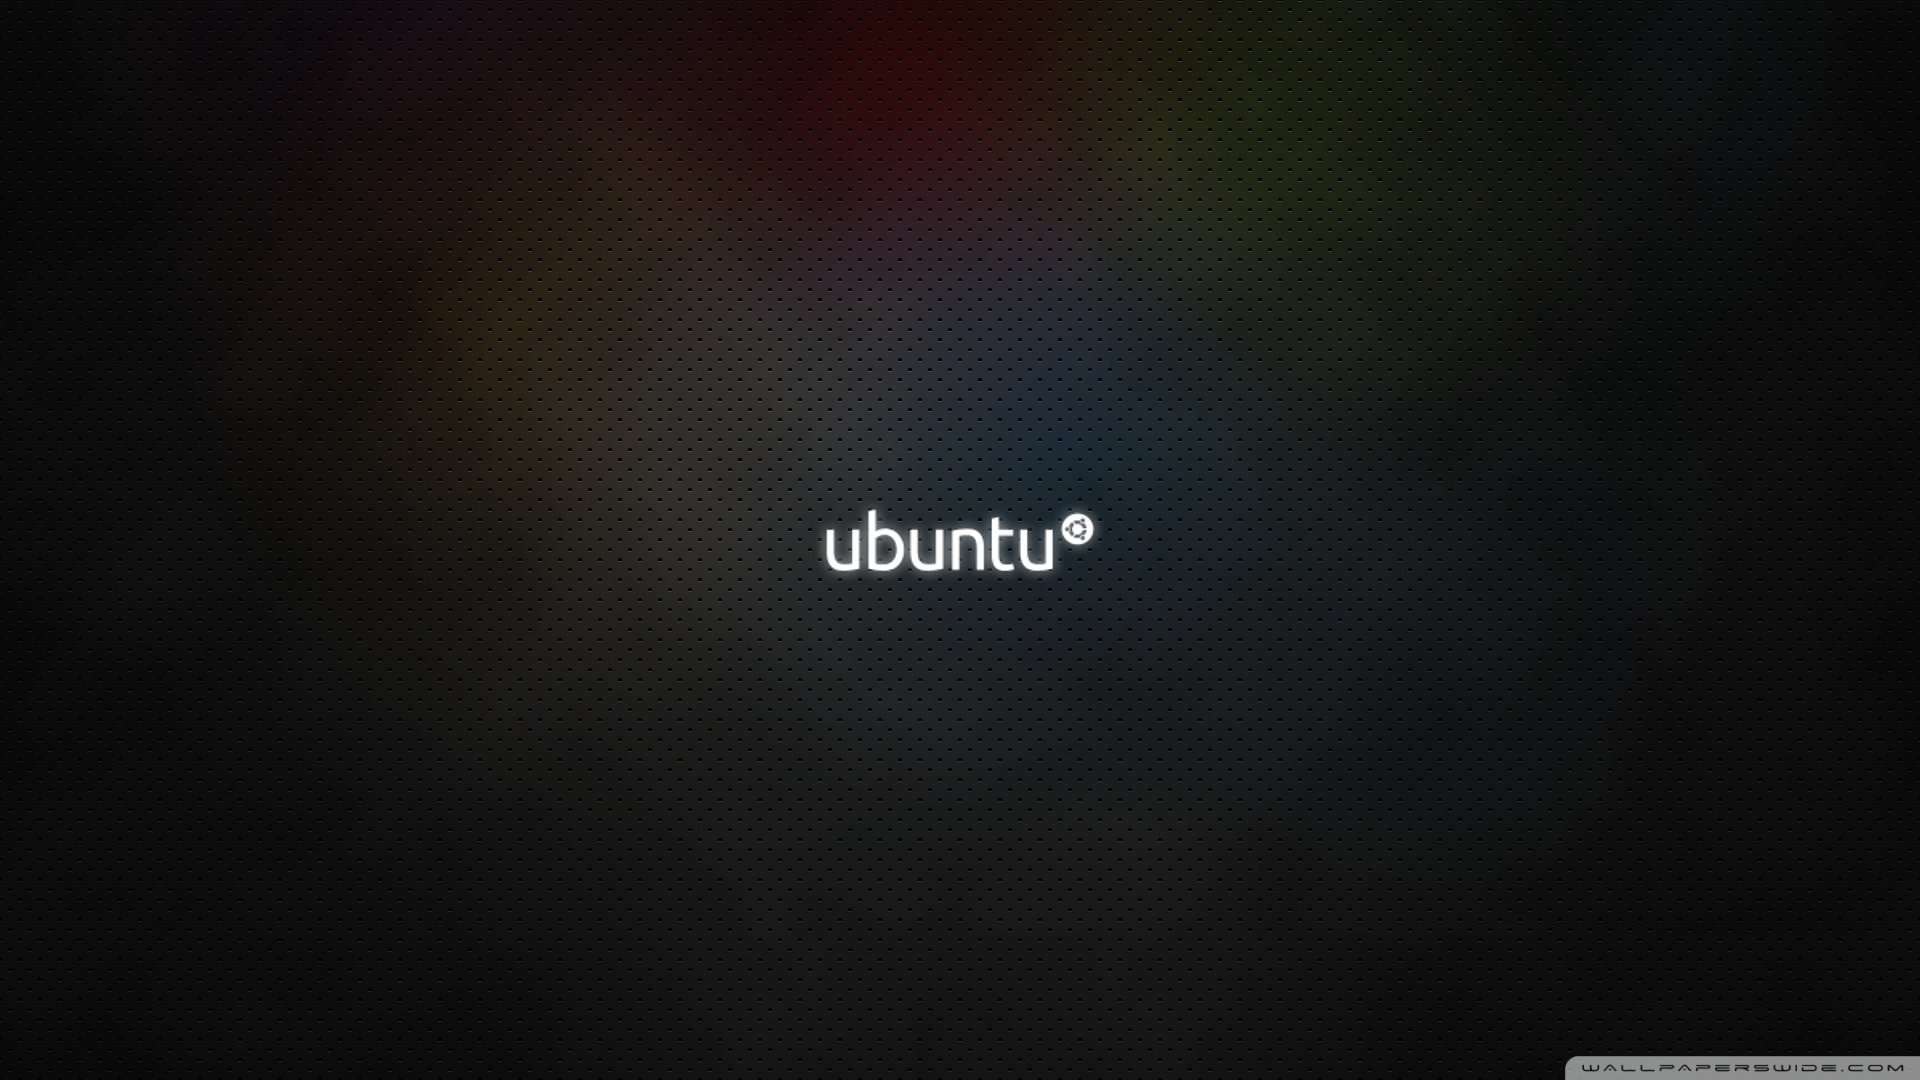 Ubuntu Wallpapers HD Wallpapers Early 1920x1080